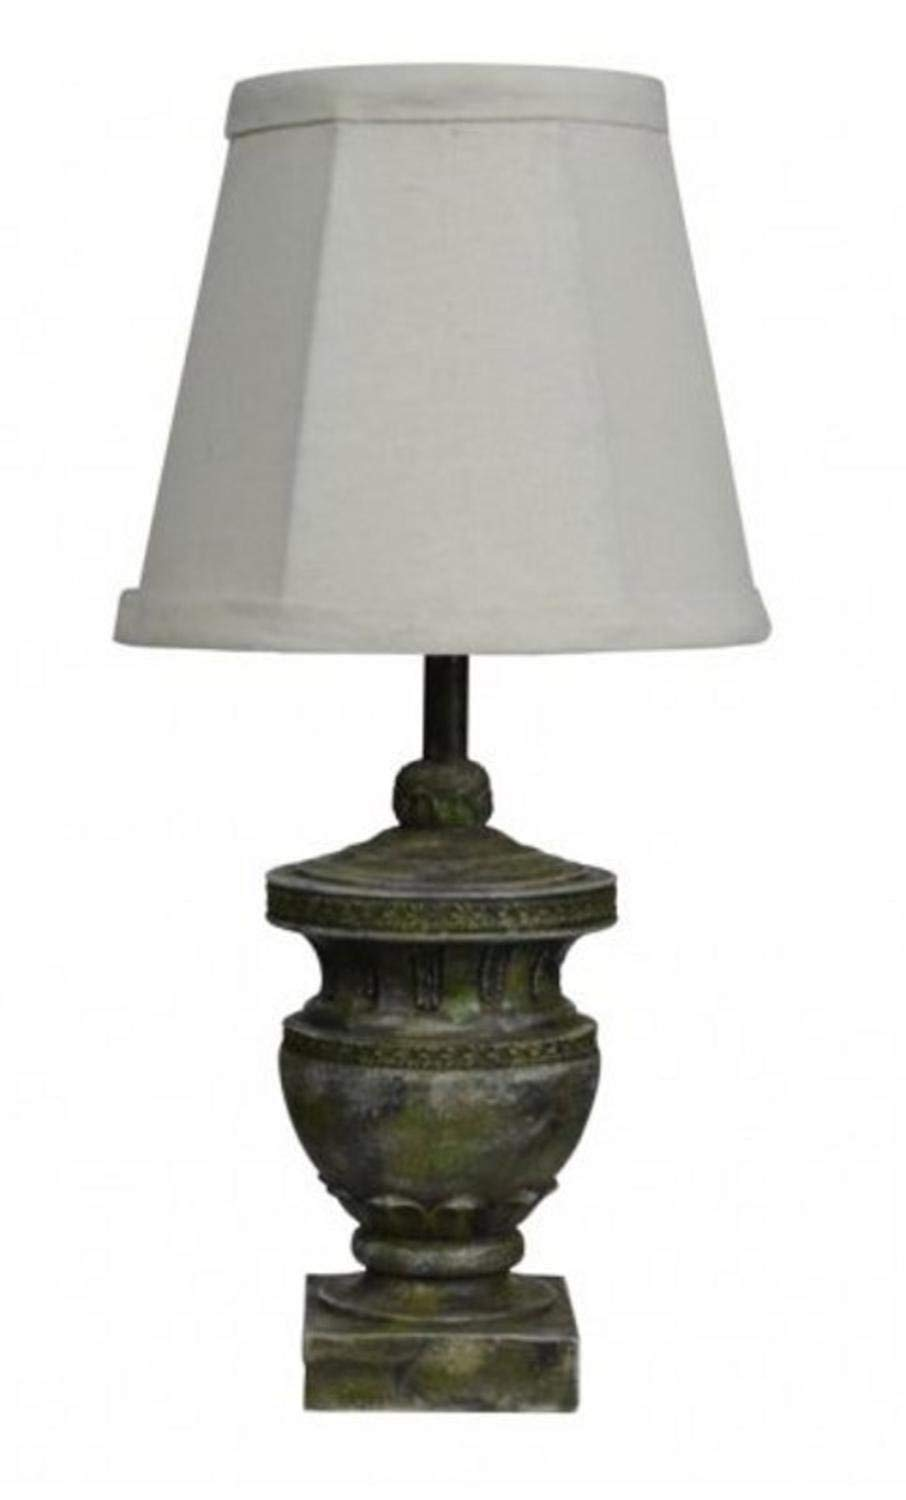 Diva At Home Set of 2 Contemporary Calais Weathered Urn Accent Lamps with Dark White Shades